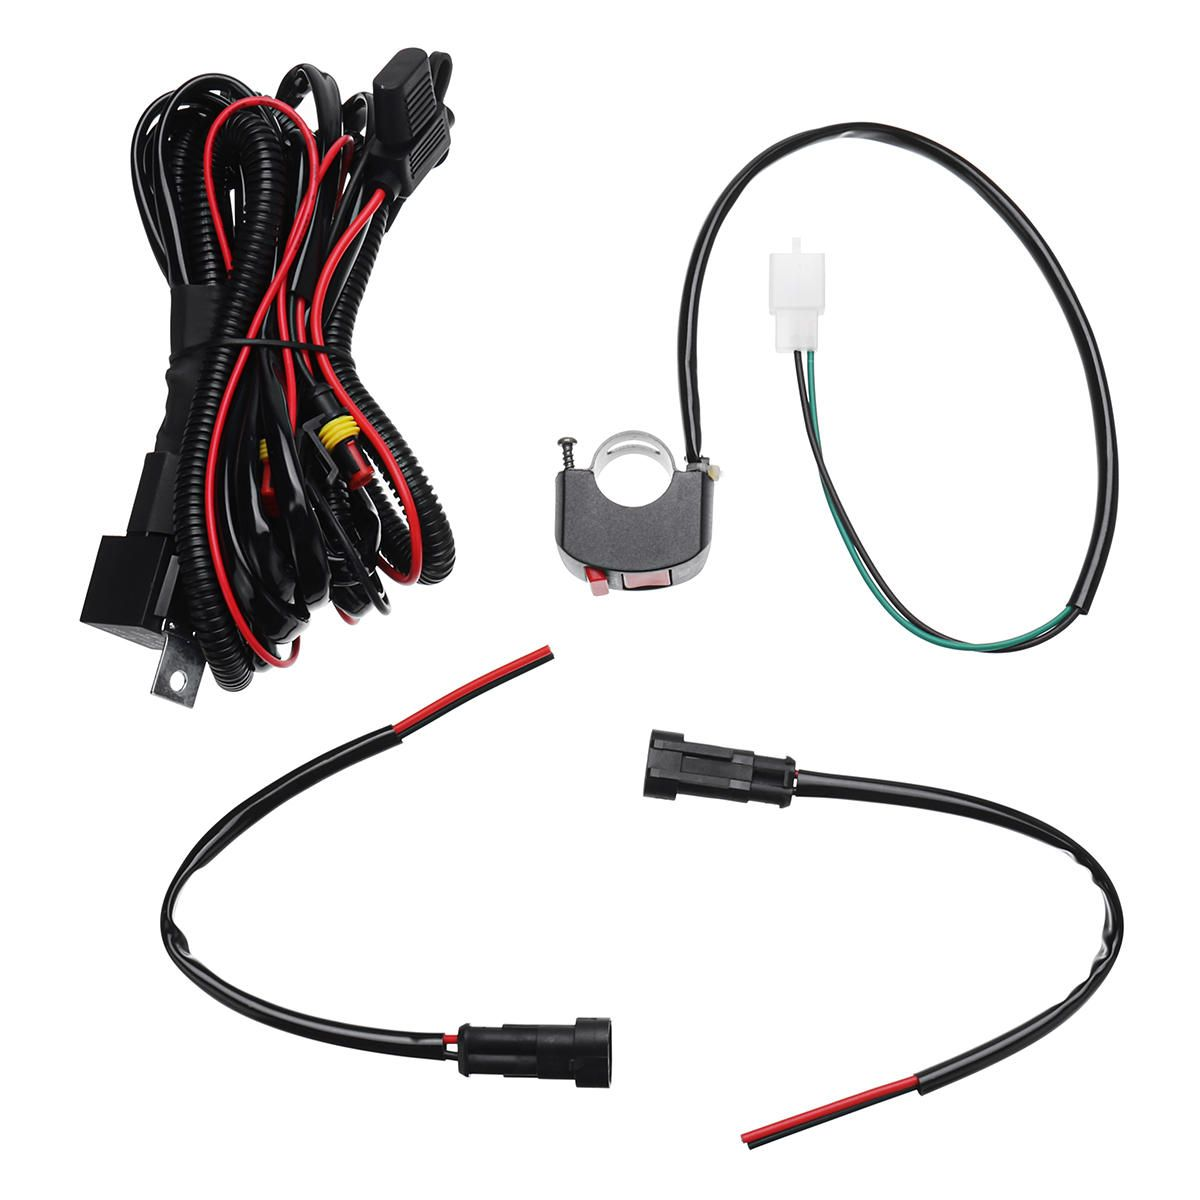 Us 15 44 10a Relsy Switch Fog Light Spot Wiring Loom Harness Kit For Universal Motorcycle Car Motorcycle From Automobiles Motorcycles On Banggood Com Harness Wire Motorcycle